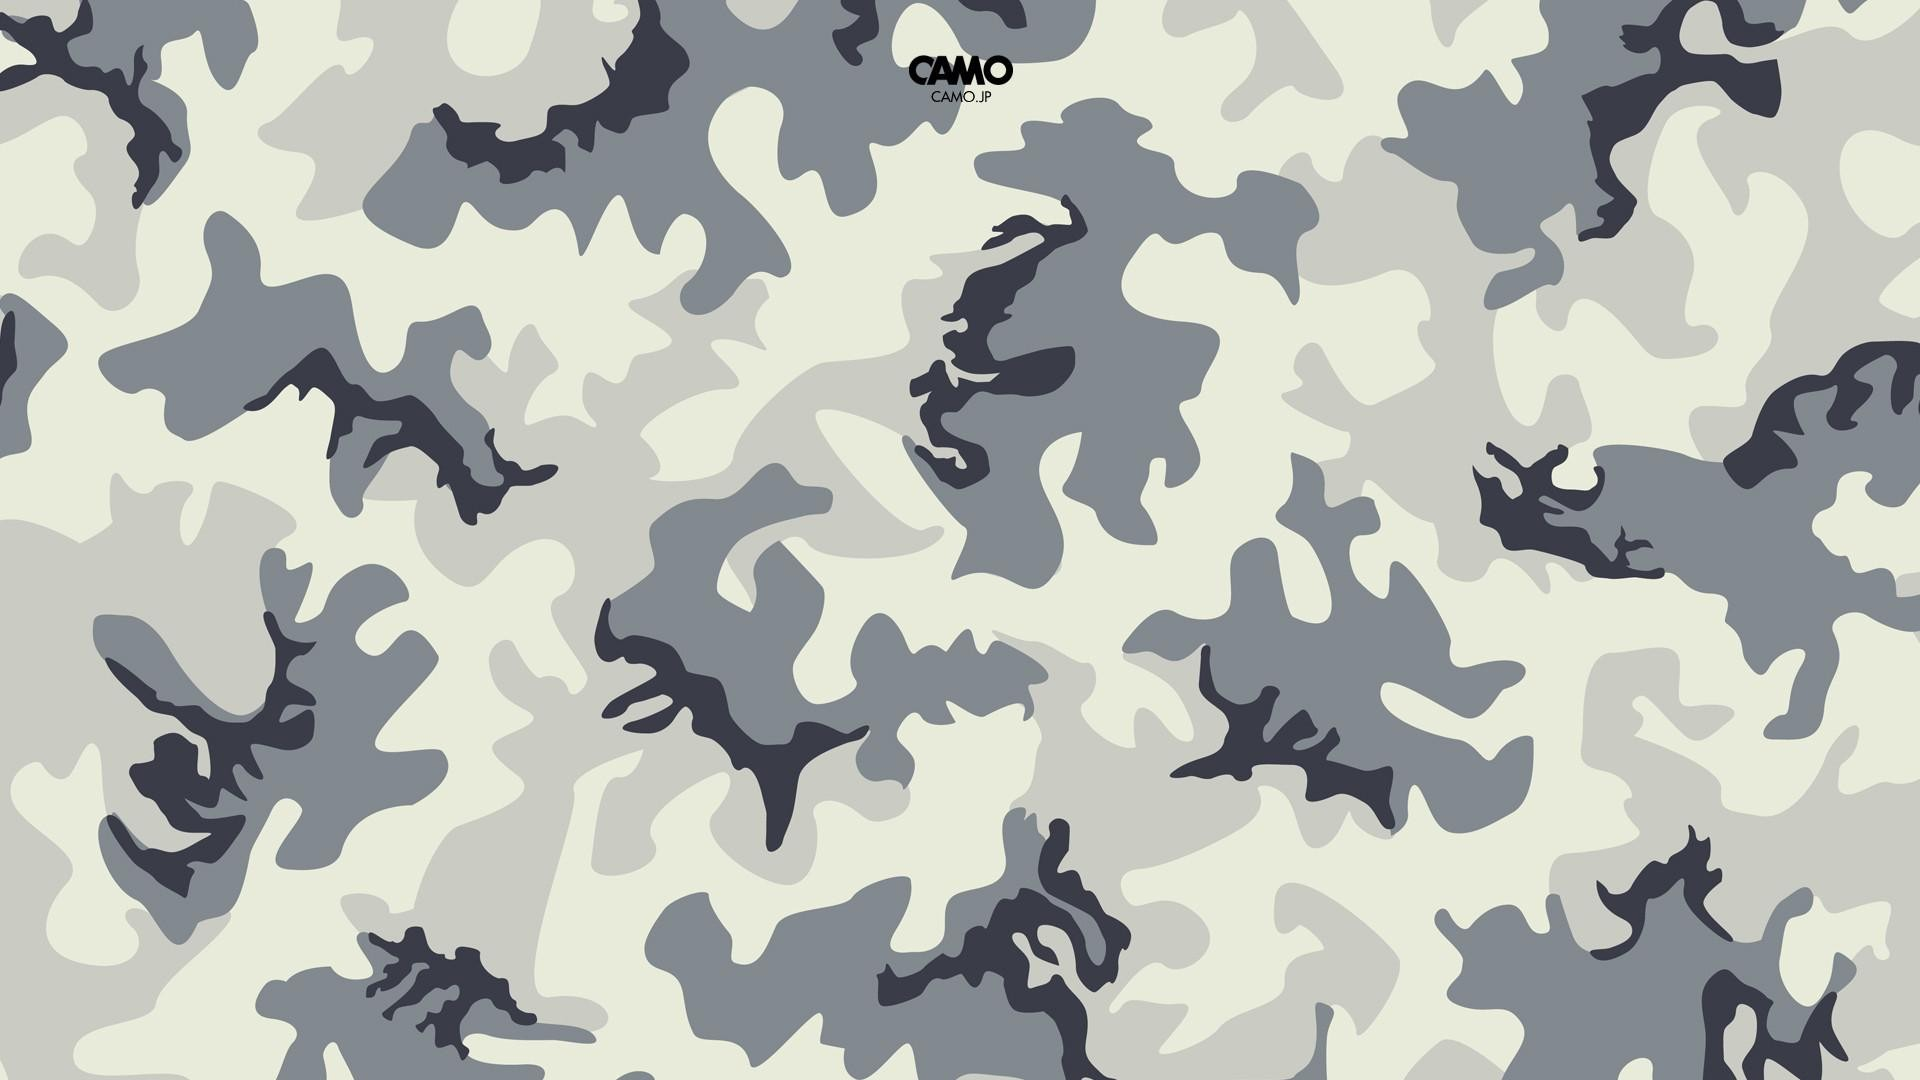 camouflage wallpaper download free full hd wallpapers for